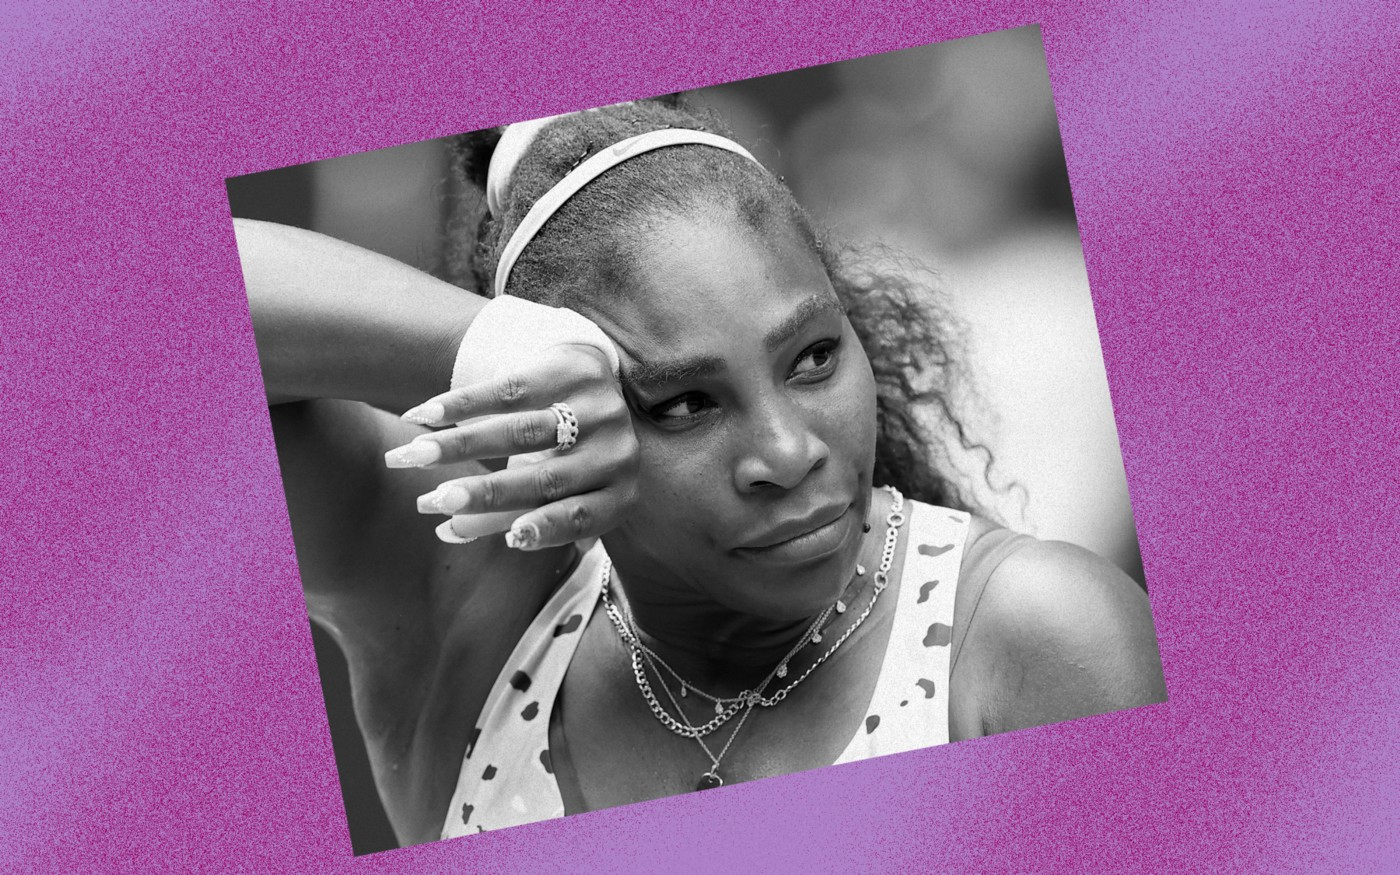 Black and white photo of Serena Williams against a violet background.